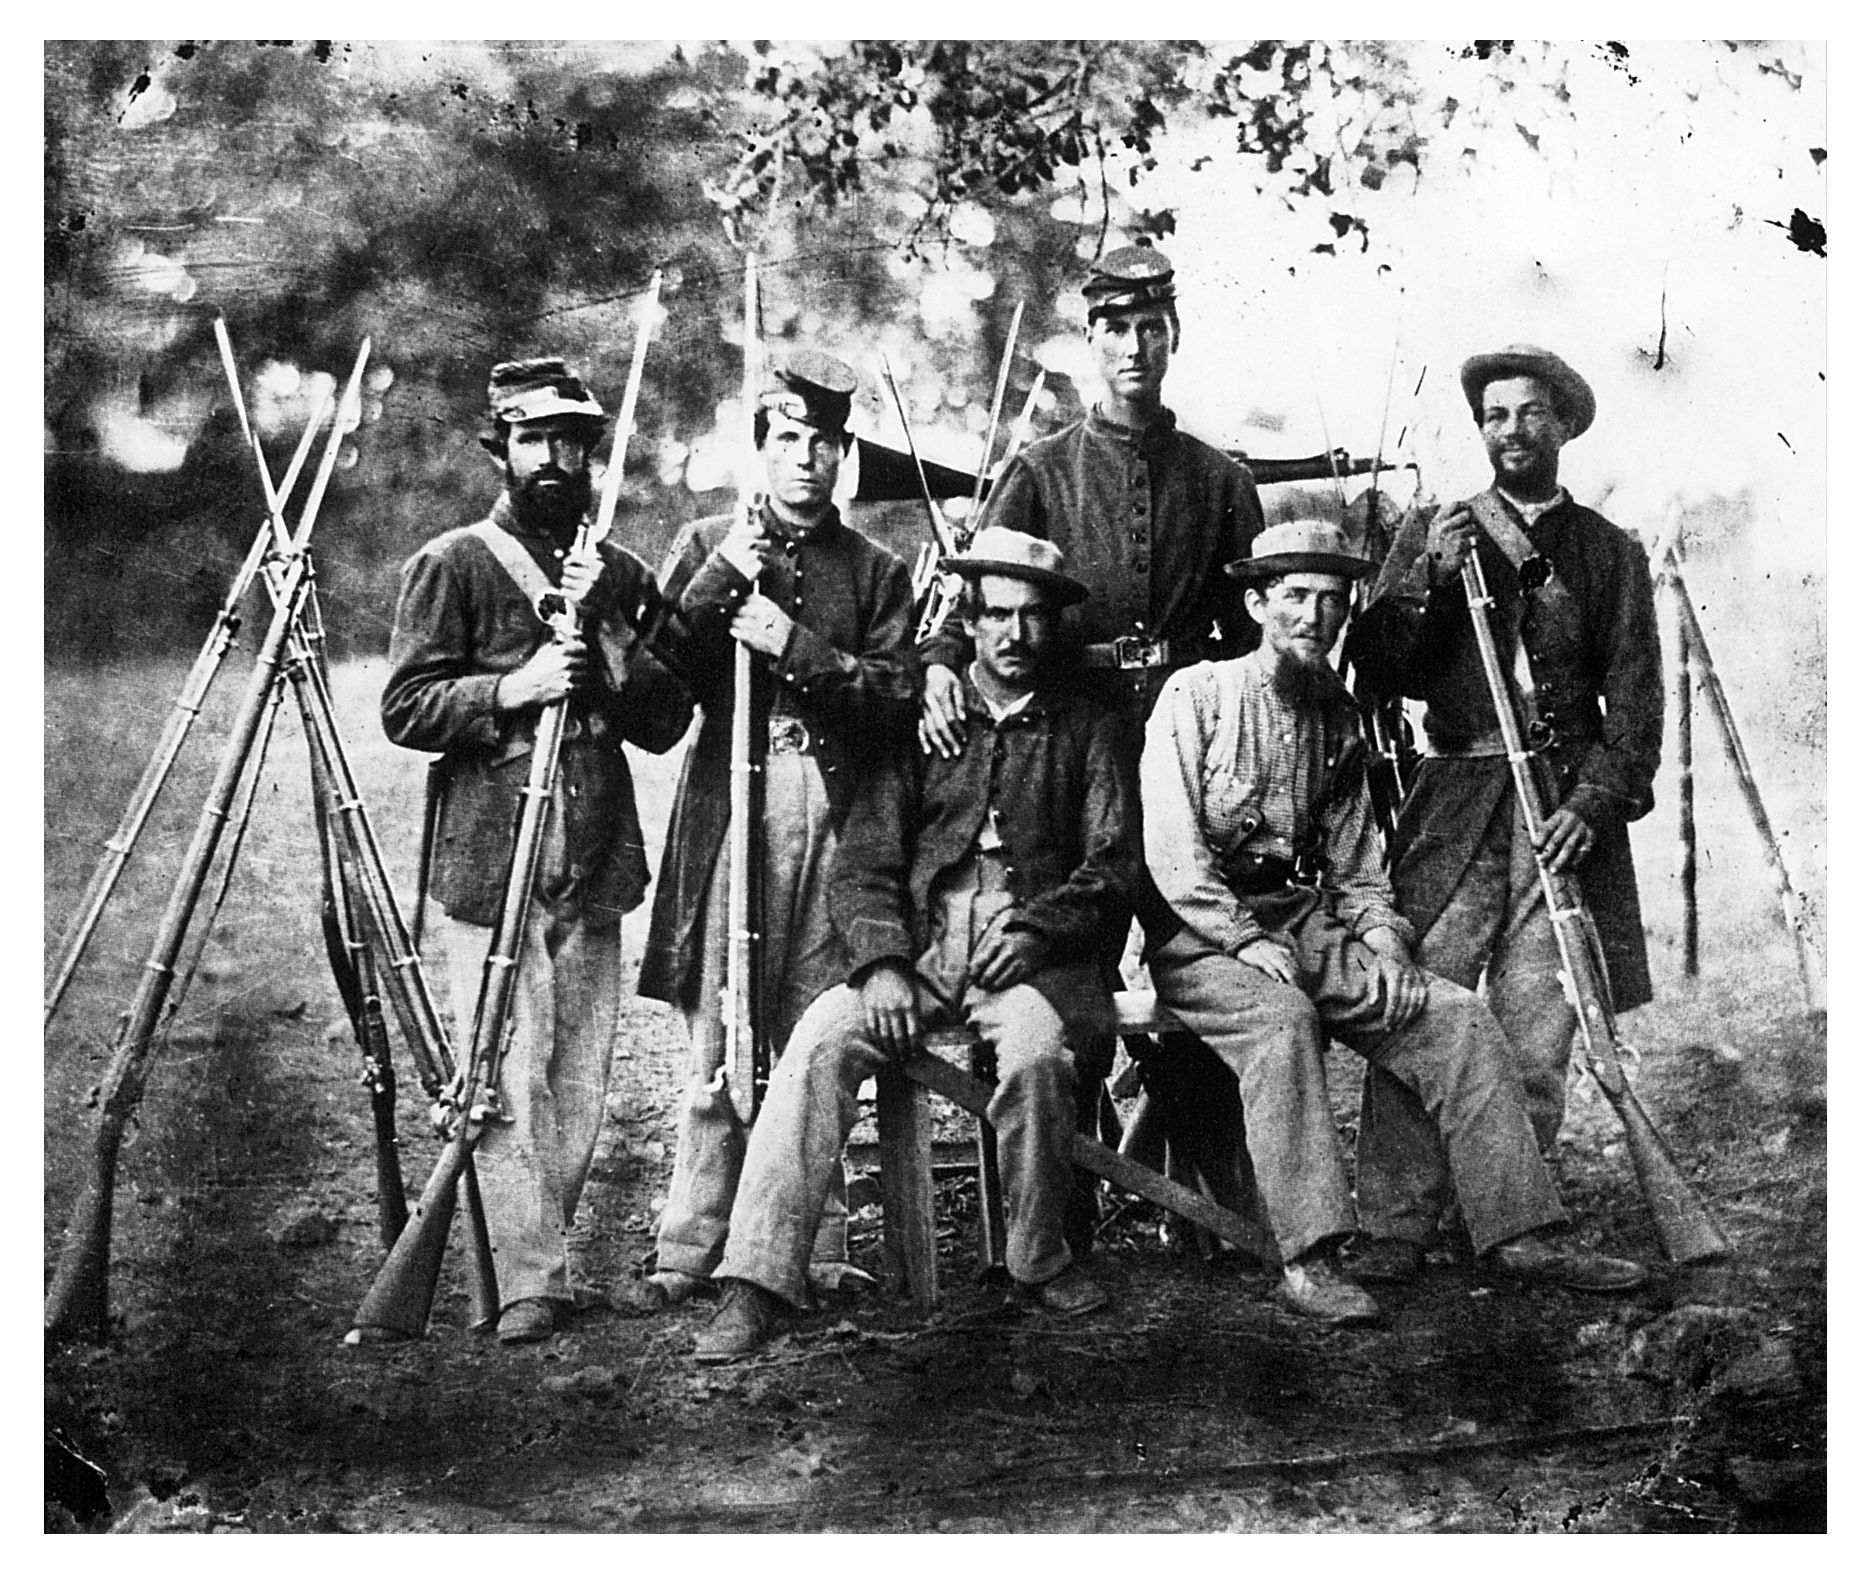 military life during civil war When war broke out in 1861, kids across the north and the south said goodbye to their fathers, brothers, uncles, and cousins -- or joined the military themselves as many as 20% of civil war .